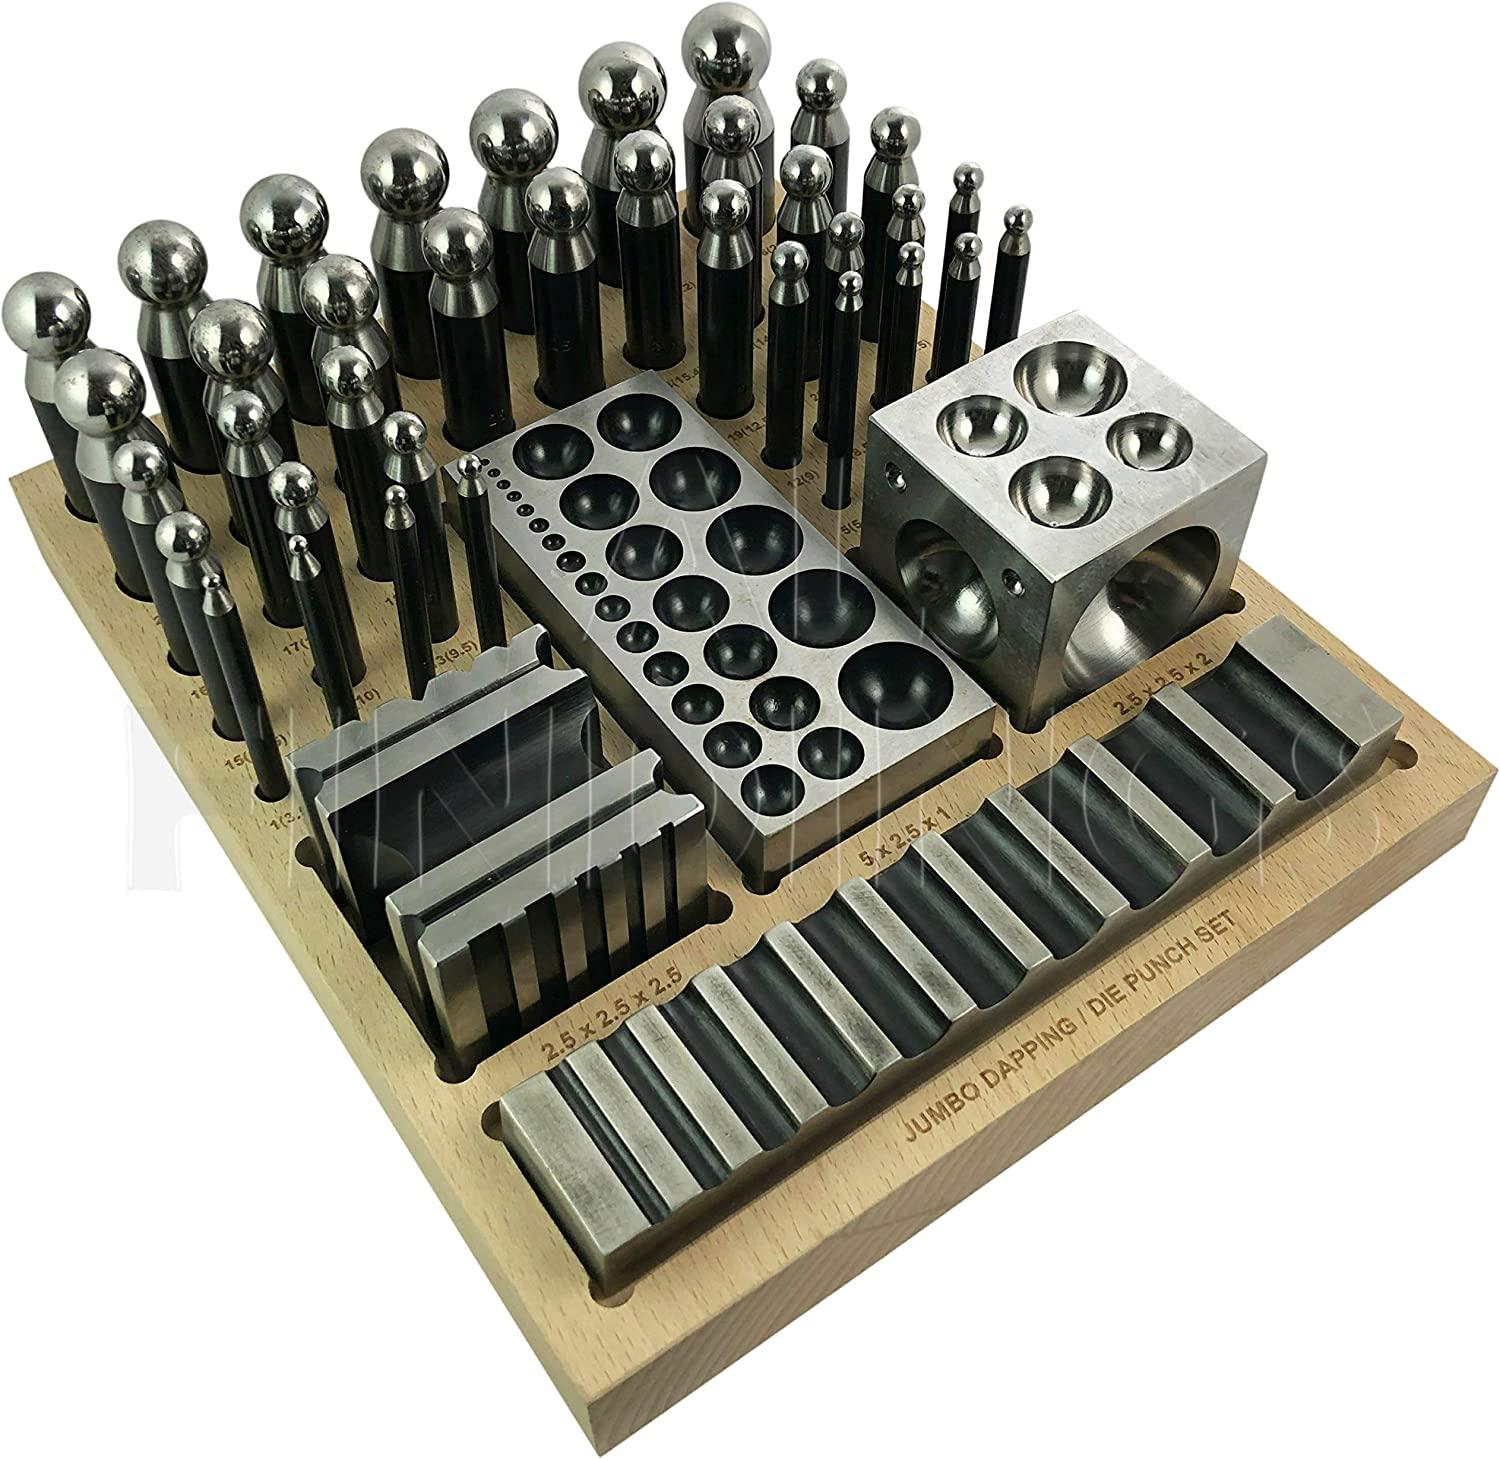 40 pc Jumbo Doming Block and Punch Set made of Steel Dapping Die Jewellers Tool